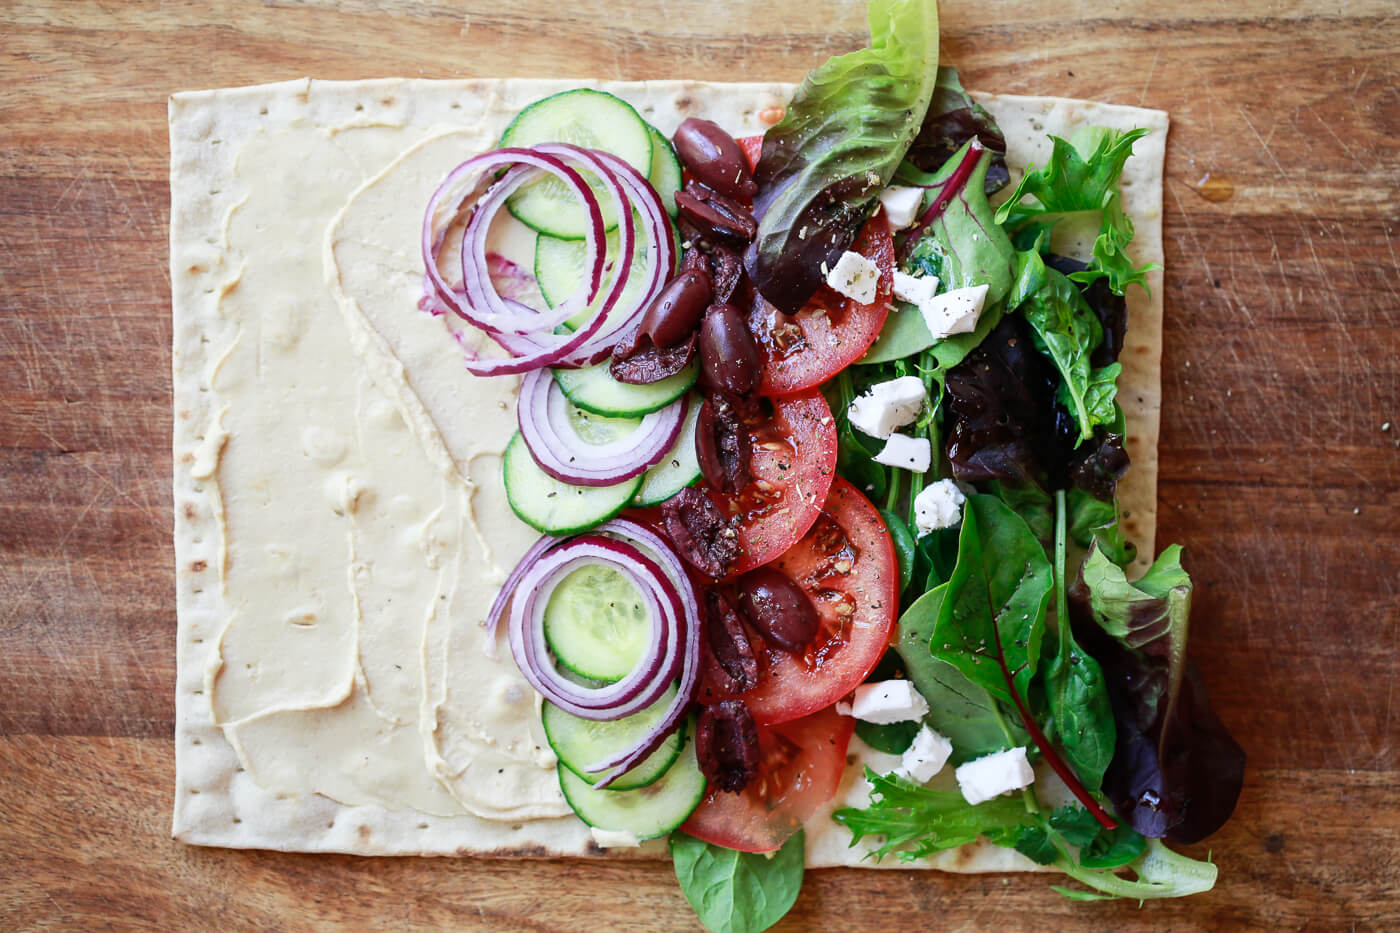 A piece of lavash flatbread is covered in hummus and vegetables.